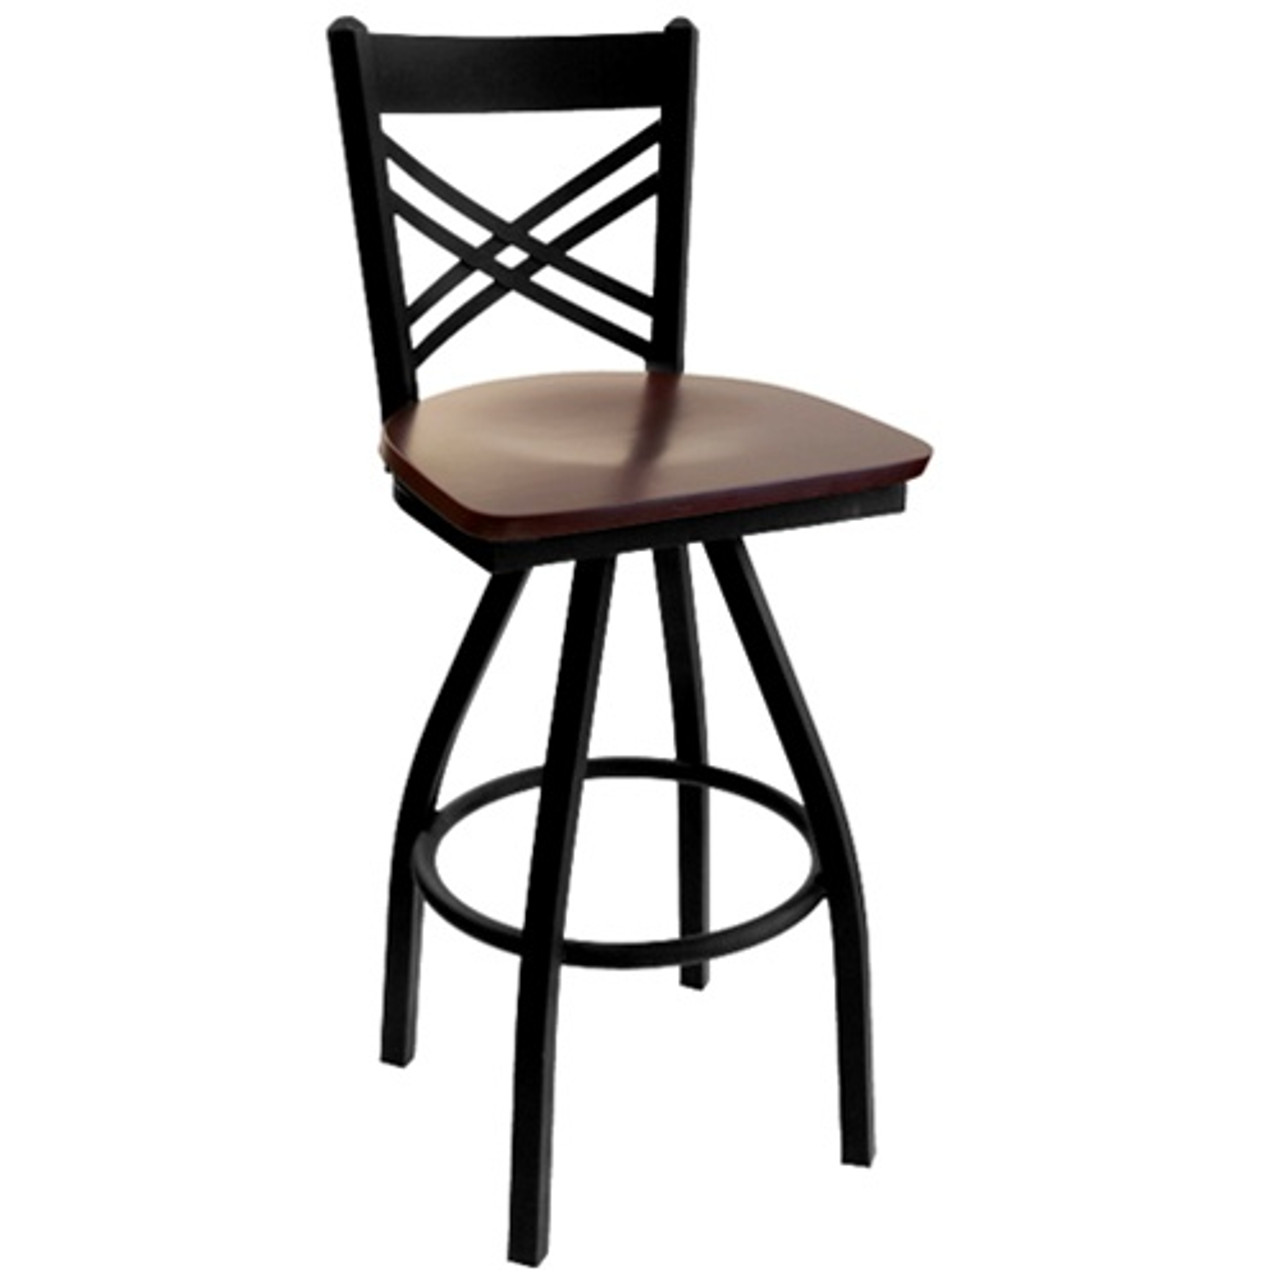 Stupendous Bfm Seating Akrin Black Metal Cross Back Restaurant Swivel Bar Stool With Wood Seat 2130S Sbw Alphanode Cool Chair Designs And Ideas Alphanodeonline